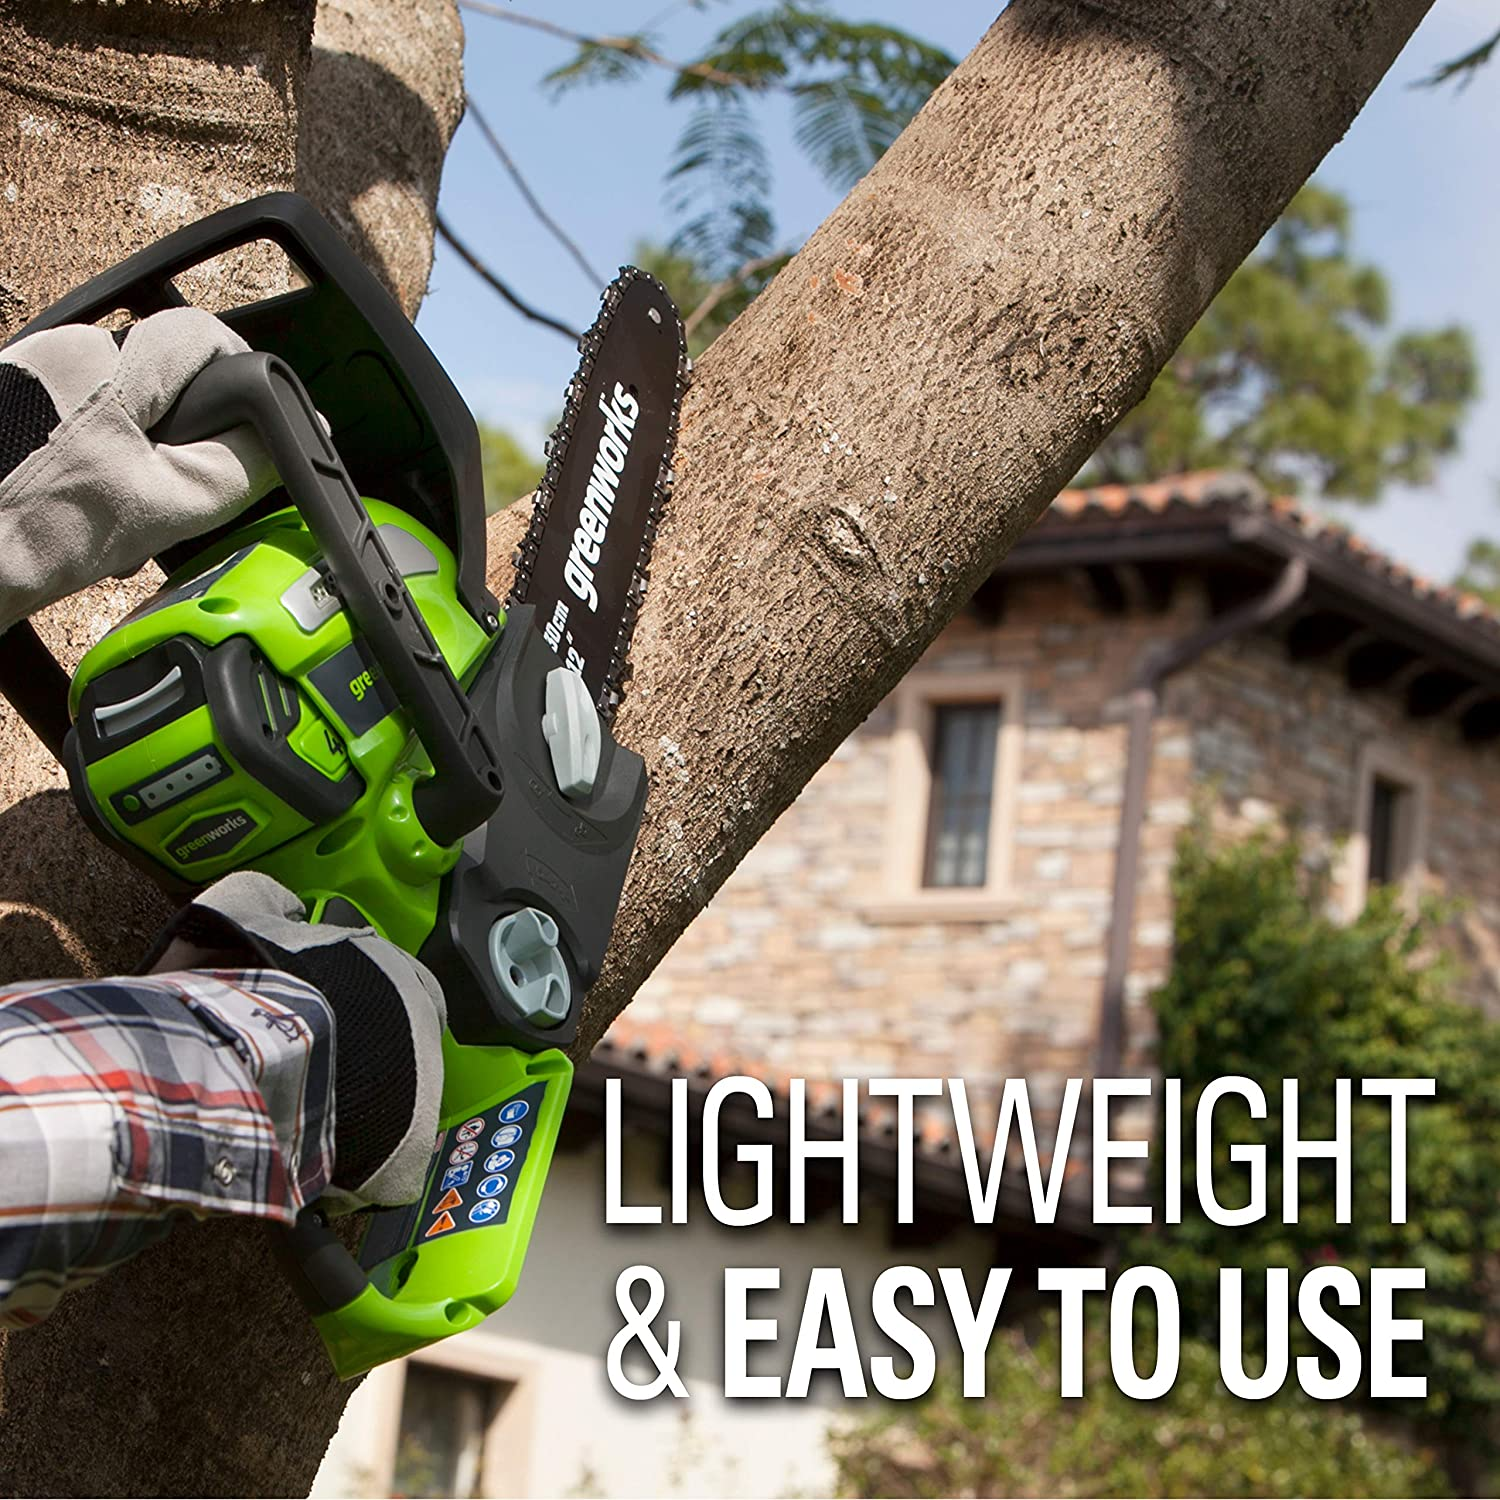 Greenworks Lightweight Chainsaw